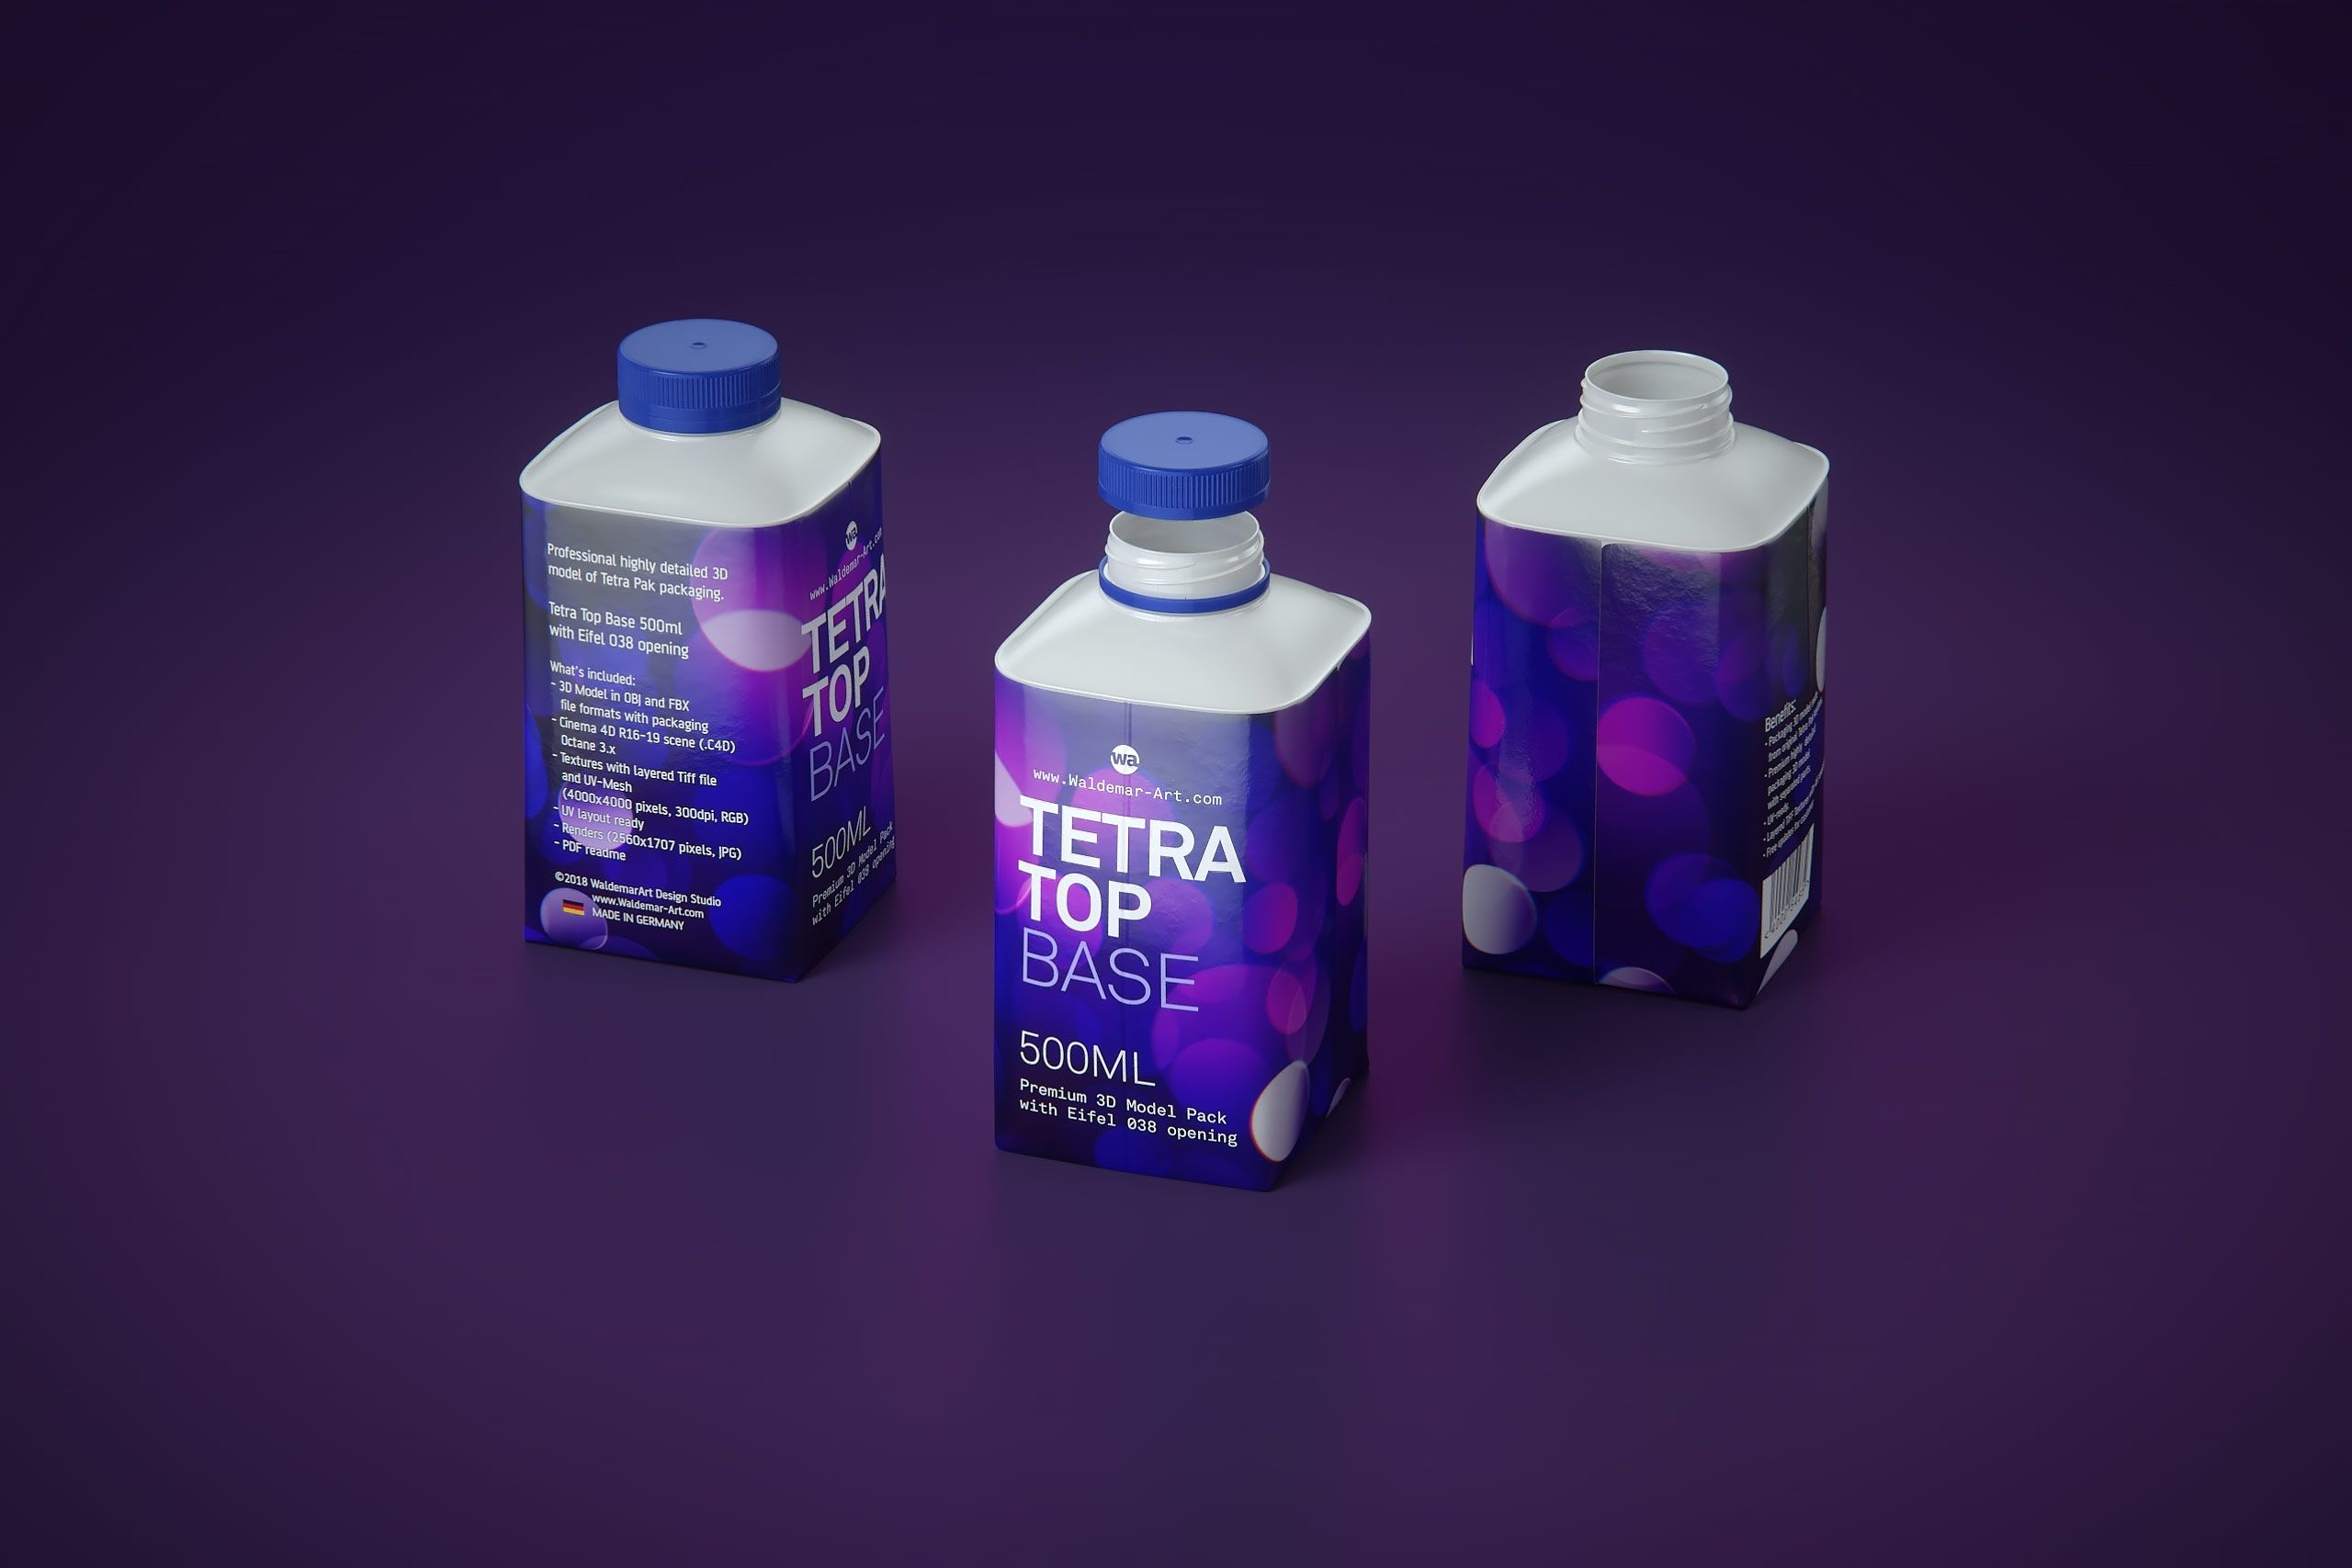 Tetra Pak 3d model of the Tetra Top Base 500ml with Eifel